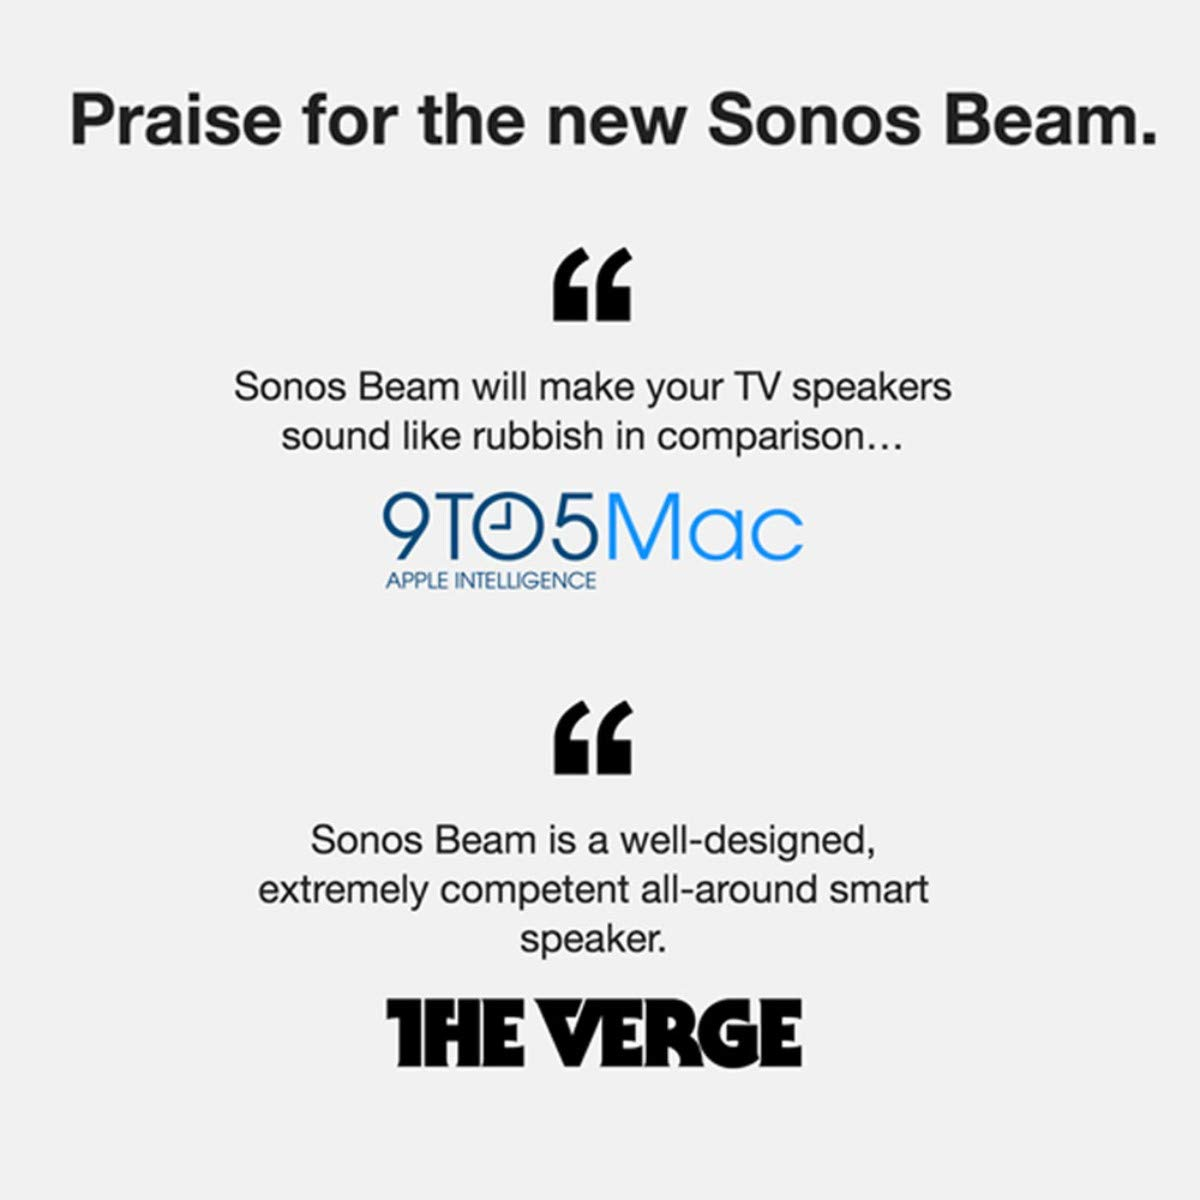 Black All-new Sonos Beam Compact Smart TV Soundbar with  Alexa voice control built-in Wireless home theater and streaming music in any room.